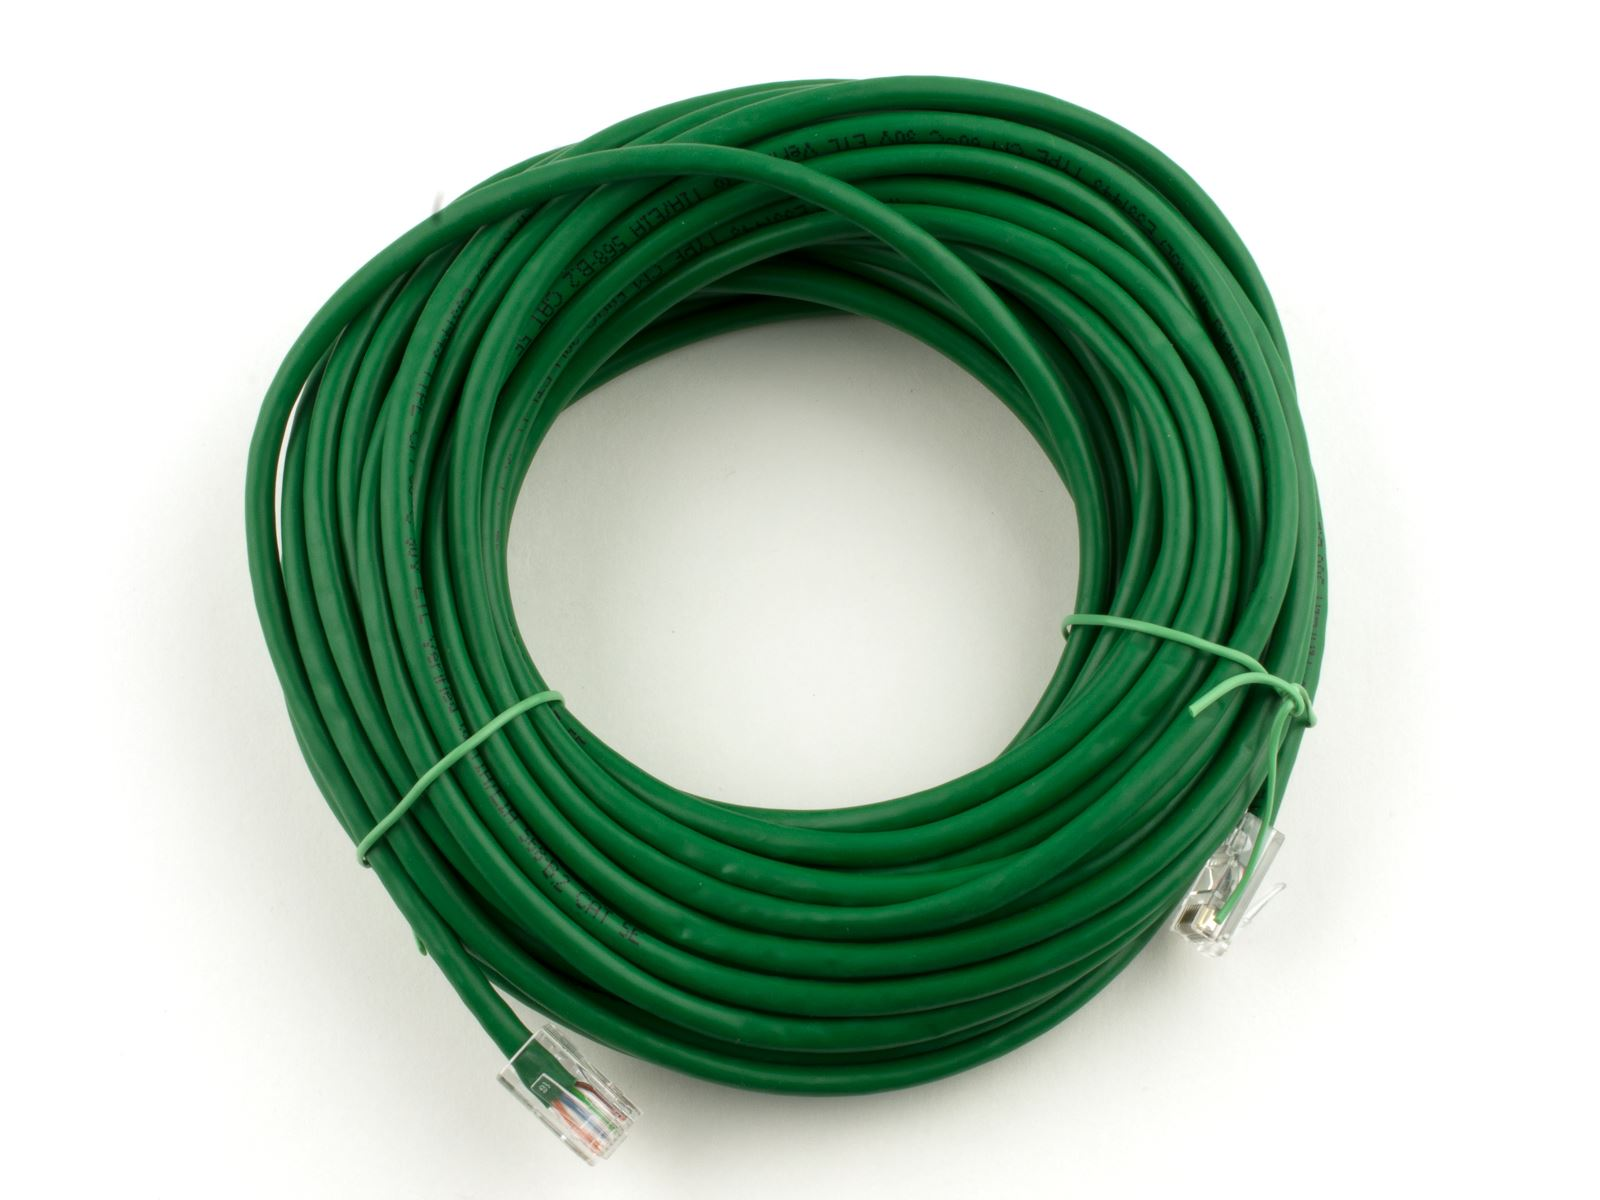 50FT Assembled CAT6 Network Patch Cable - Green | Computer Cable Store